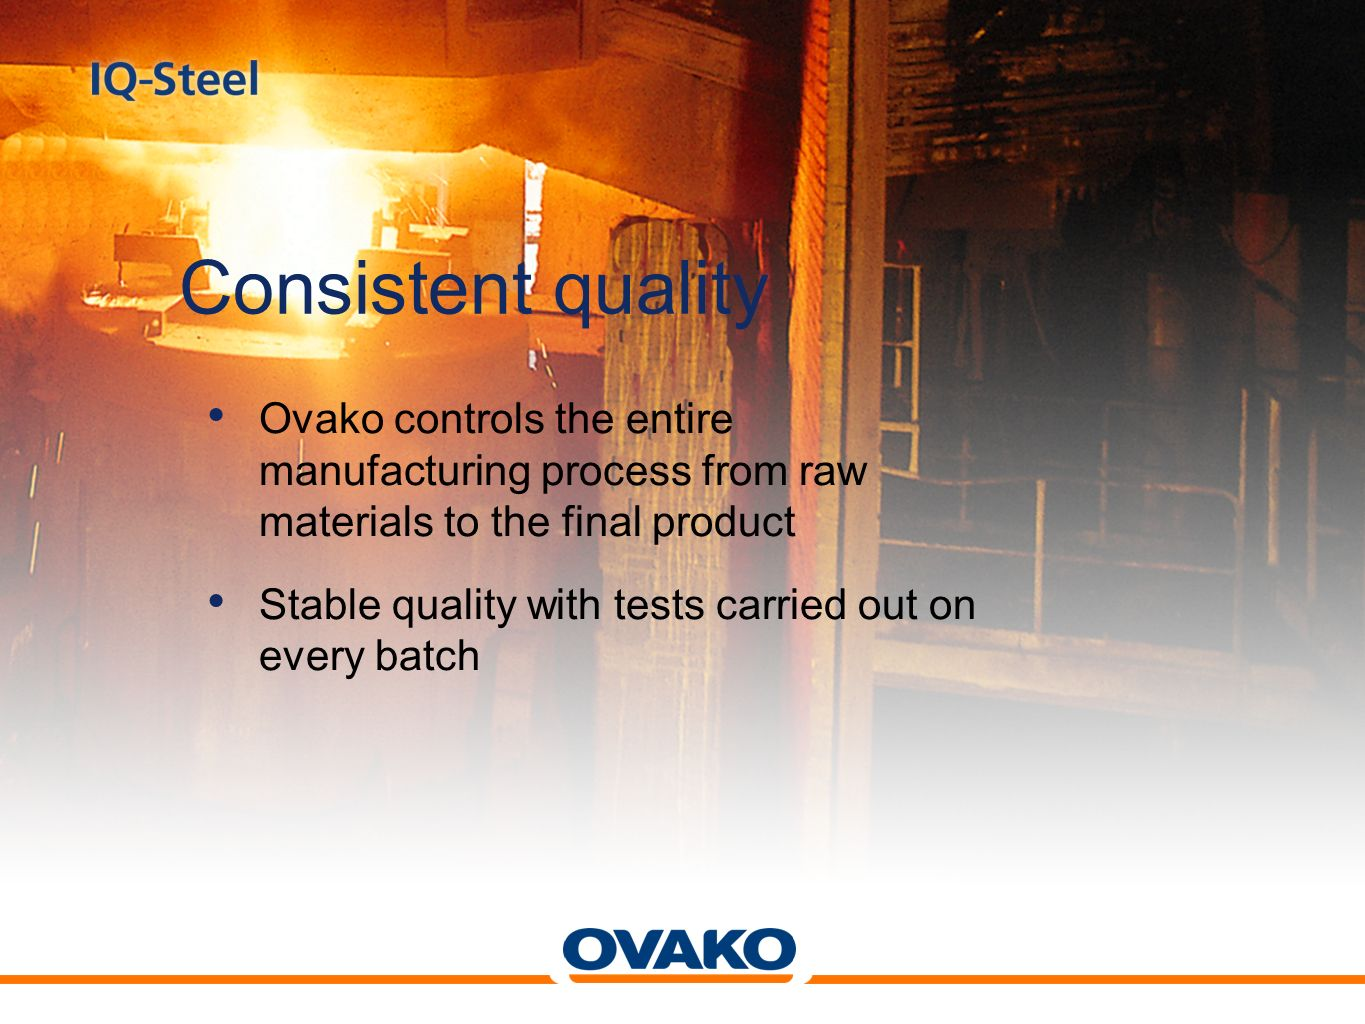 Consistent quality Ovako controls the entire manufacturing process from raw materials to the final product.